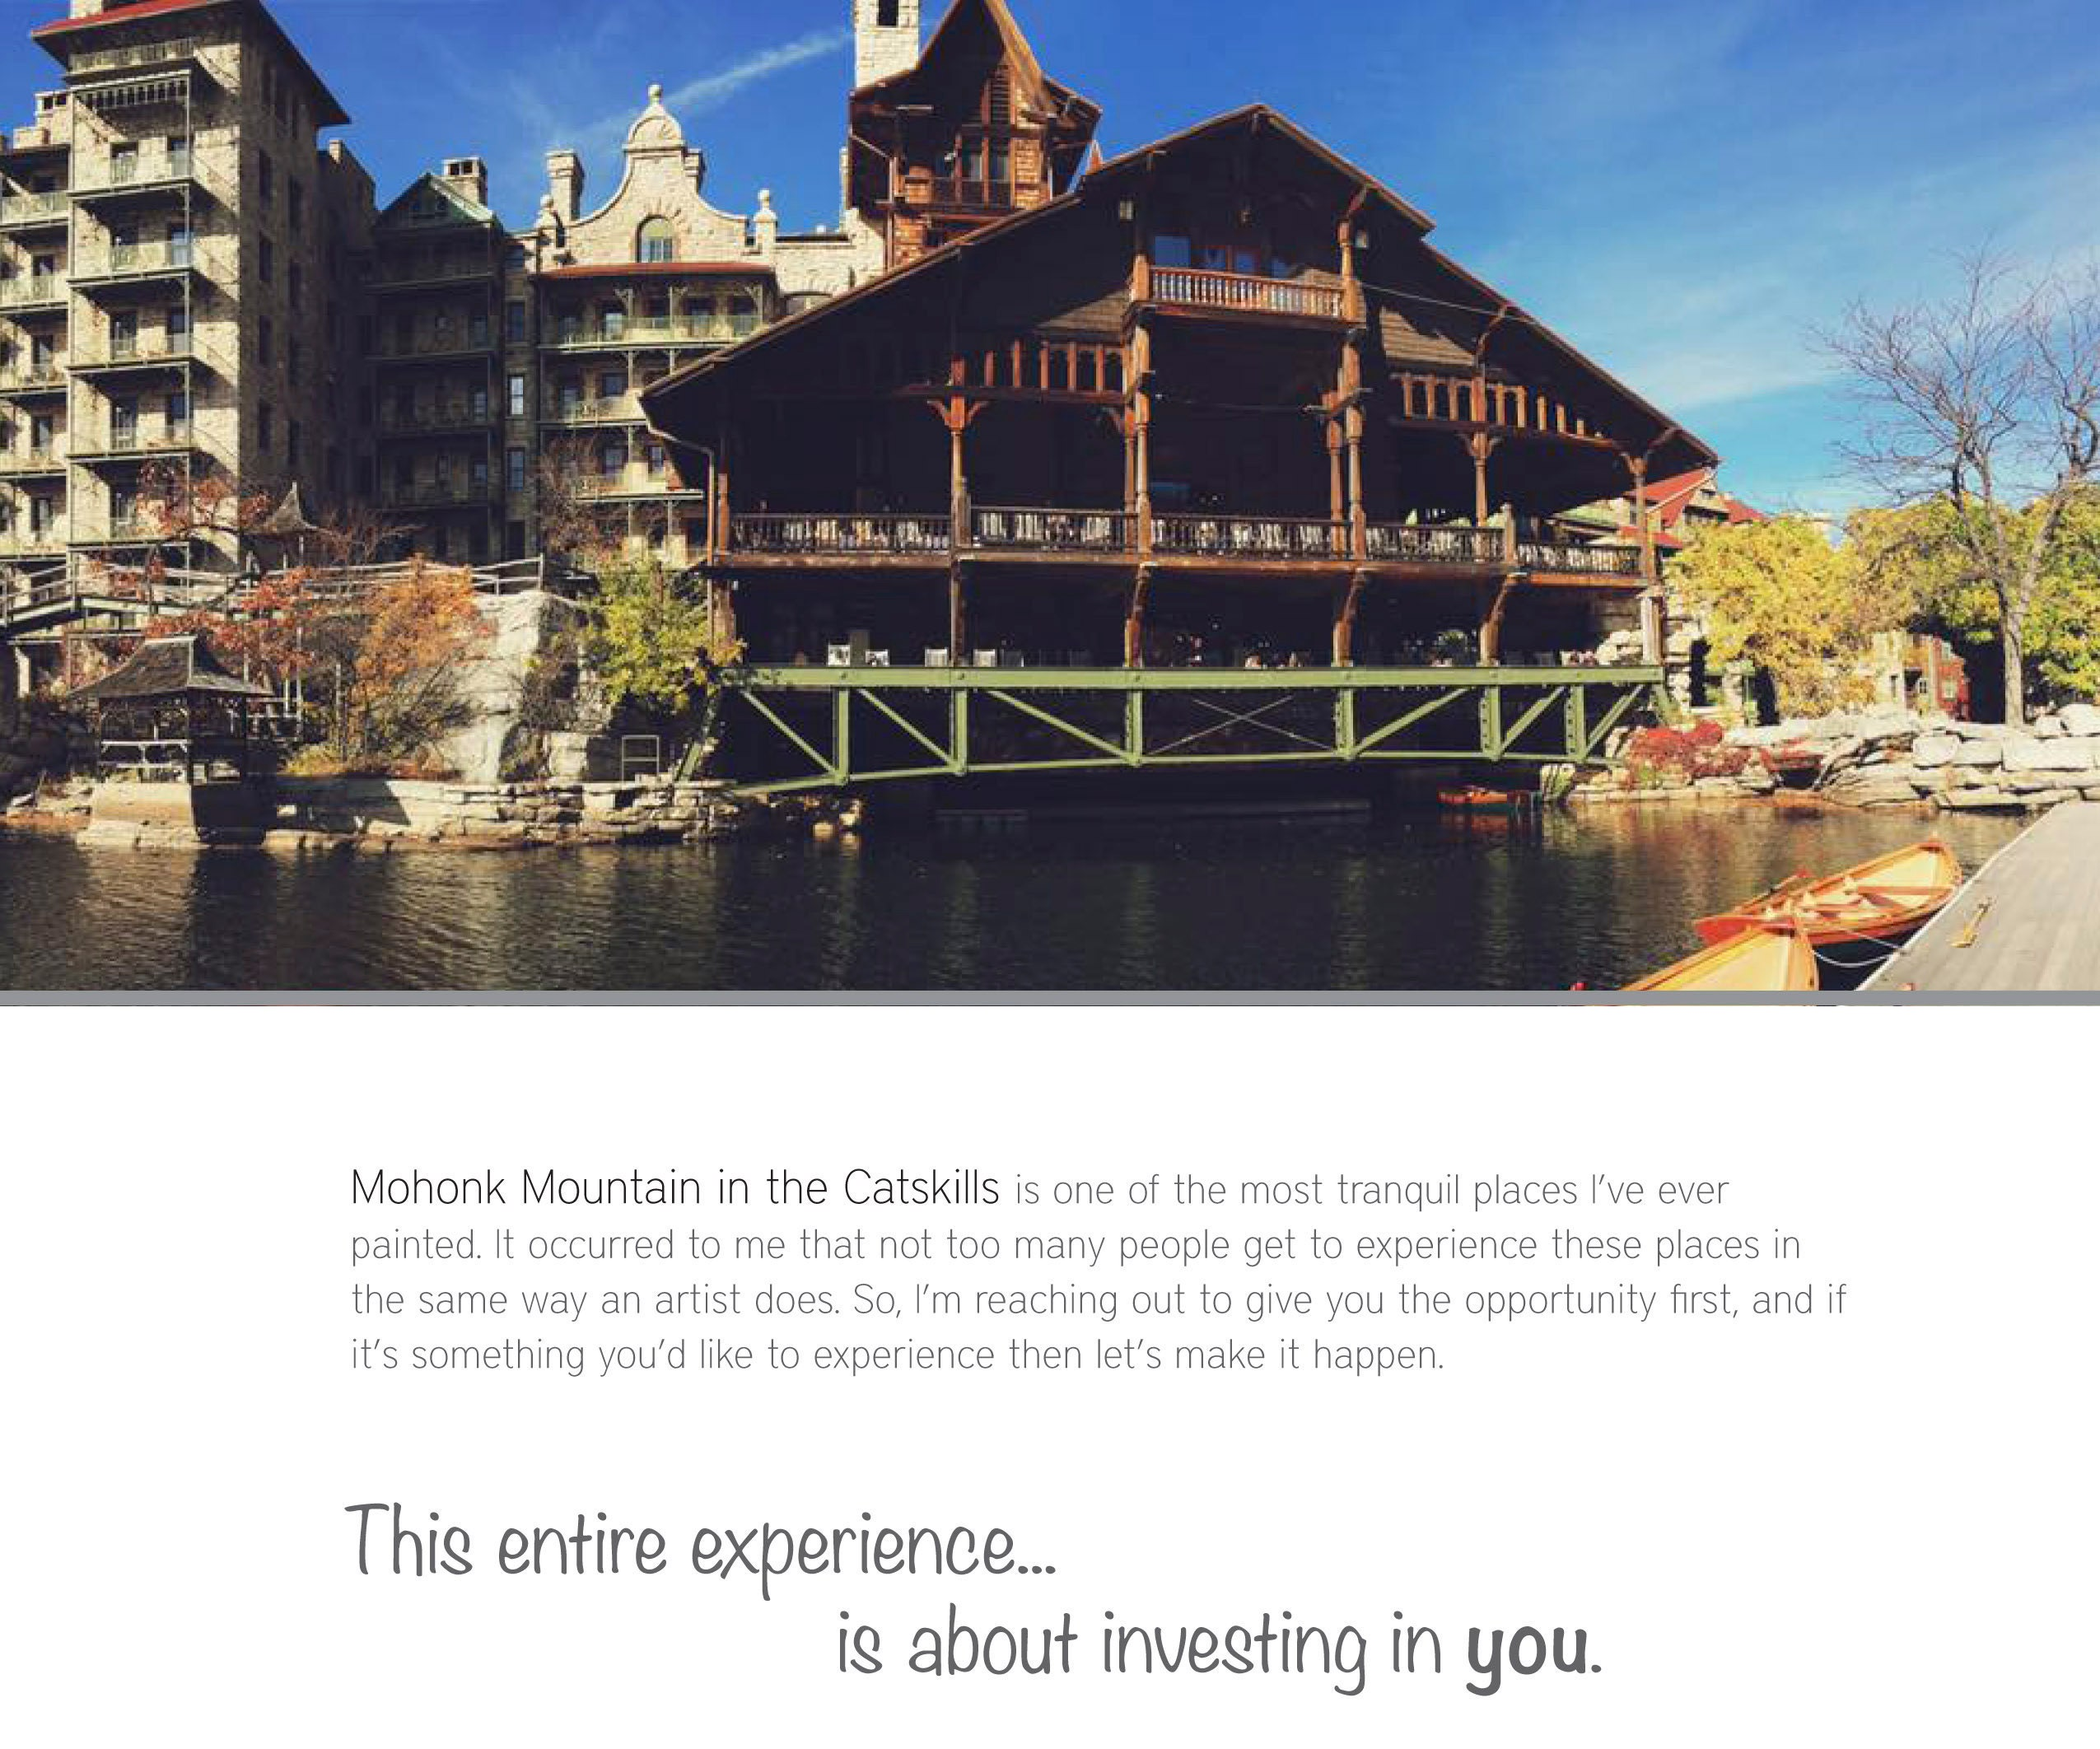 Mohonk Mountain in the Catskills is one of the most tranquil places I've ever painted. It occurred to me that not too many people get to experience these places in the same way an artist does. So, I'm reaching out to give you the opportunity first, and if it's something you'd like to experience then let's make it happen.